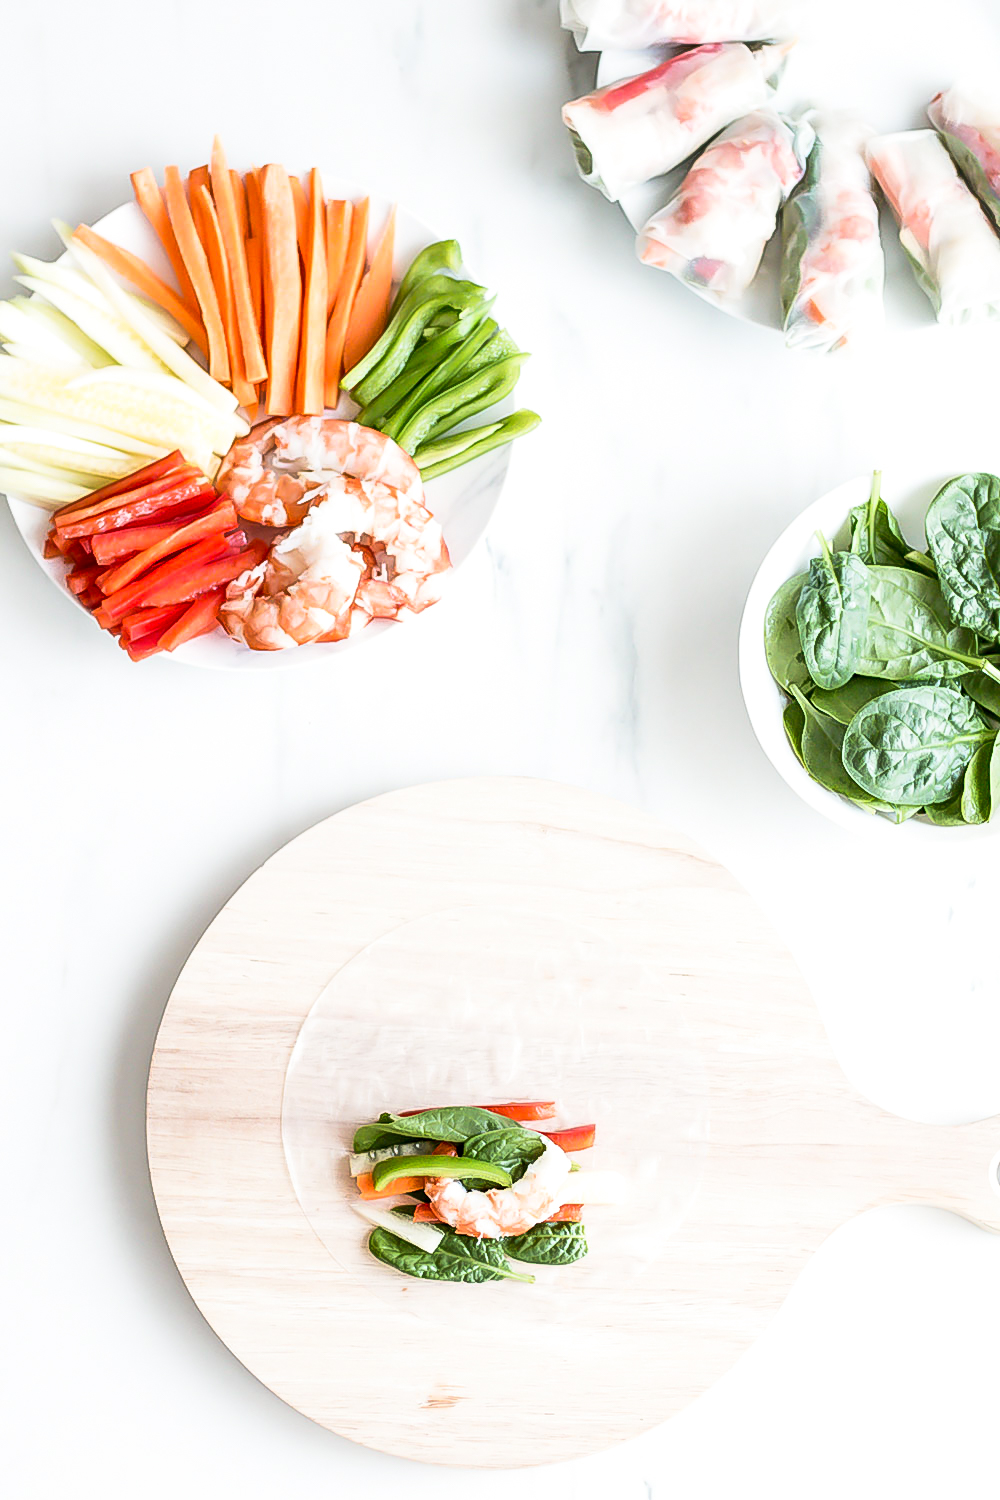 These shrimp summer rolls with sriracha dipping sauce are a good source of dietary fiber and have low fat and calorie content, making them the ideal meal to help you shed excess weight and leave you feeling full for longer. https://www.spotebi.com/recipes/shrimp-summer-rolls/